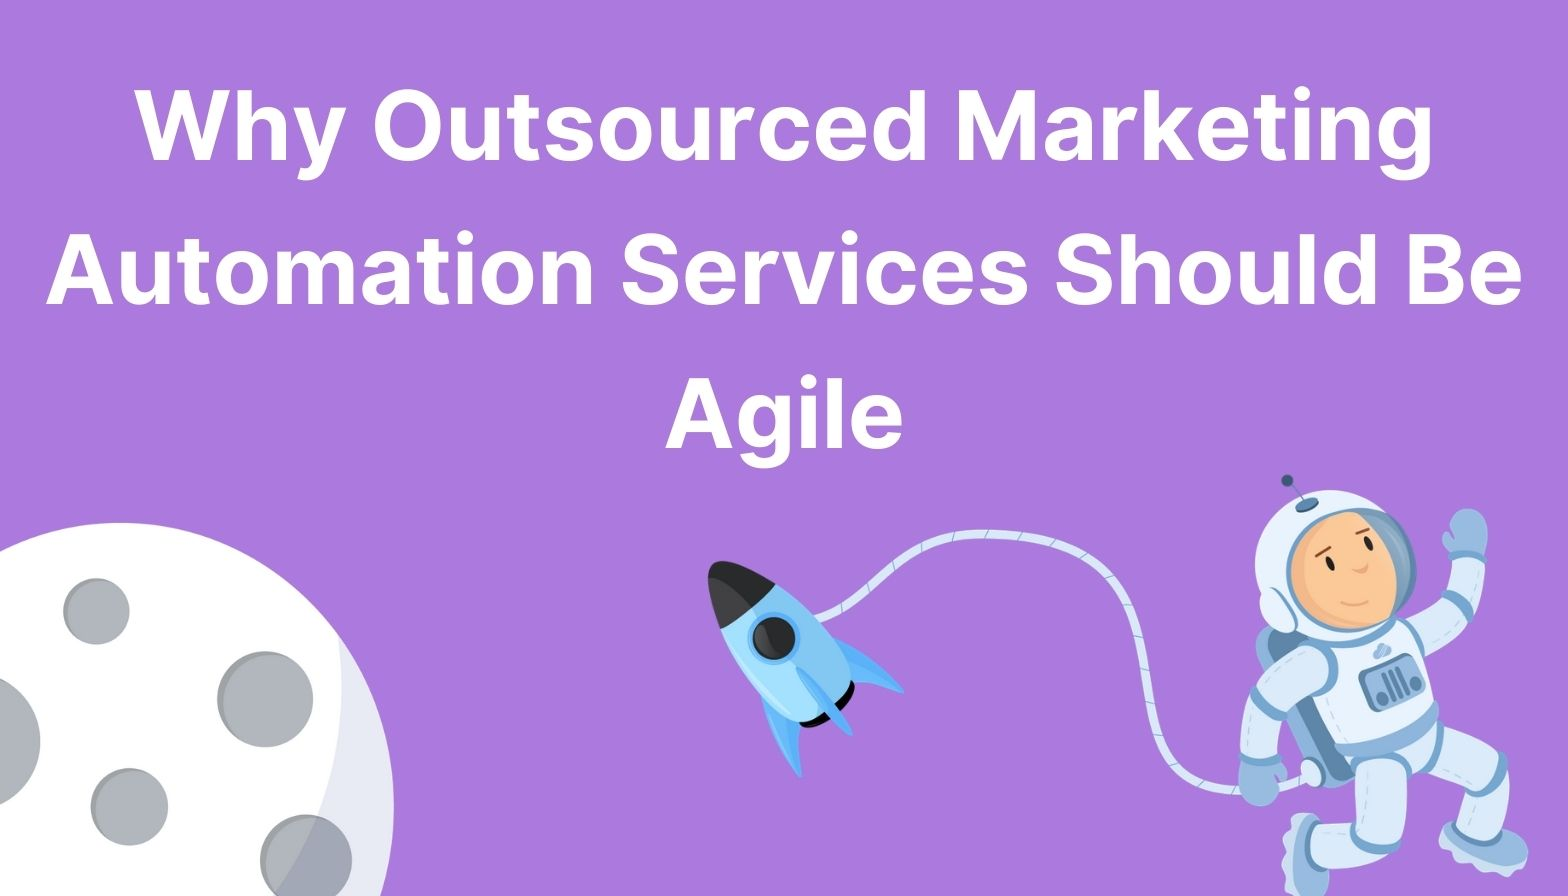 Why Outsourced Marketing Automation Services Should Be Agile